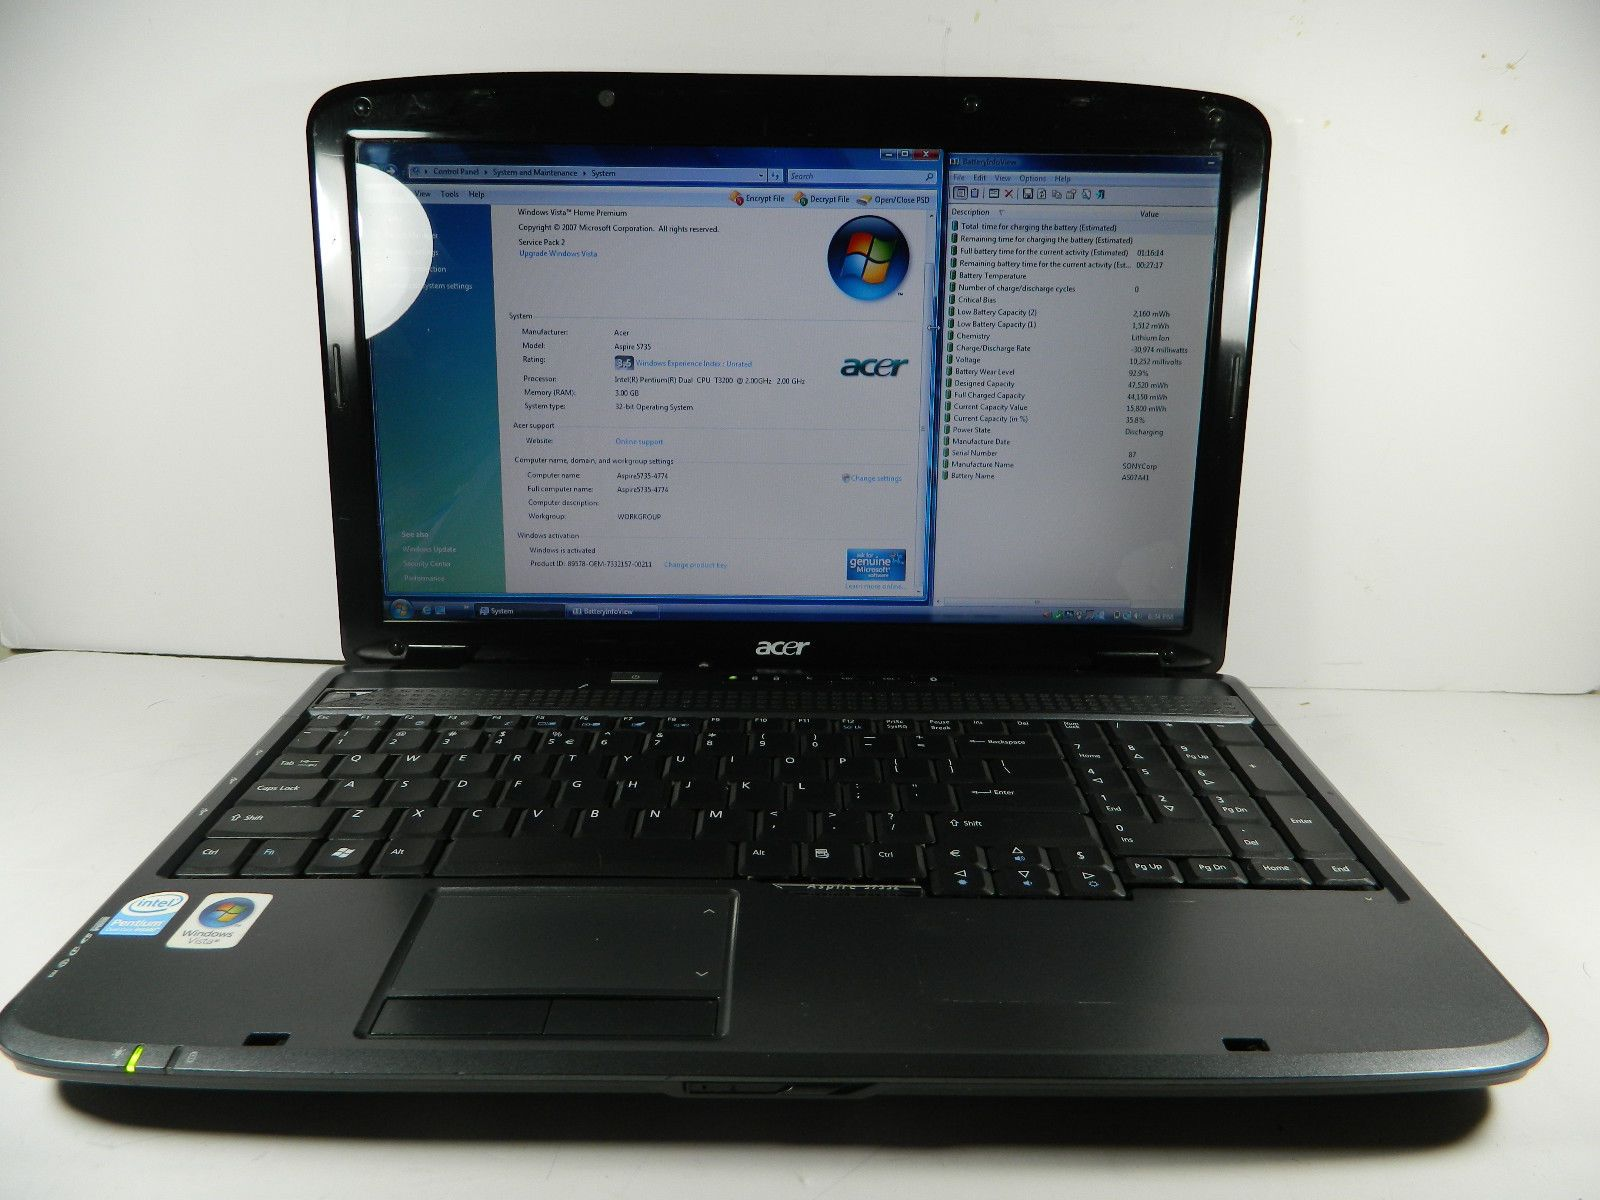 Acer Aspire Z Driver For Windows Xp Bit - Windows Driver